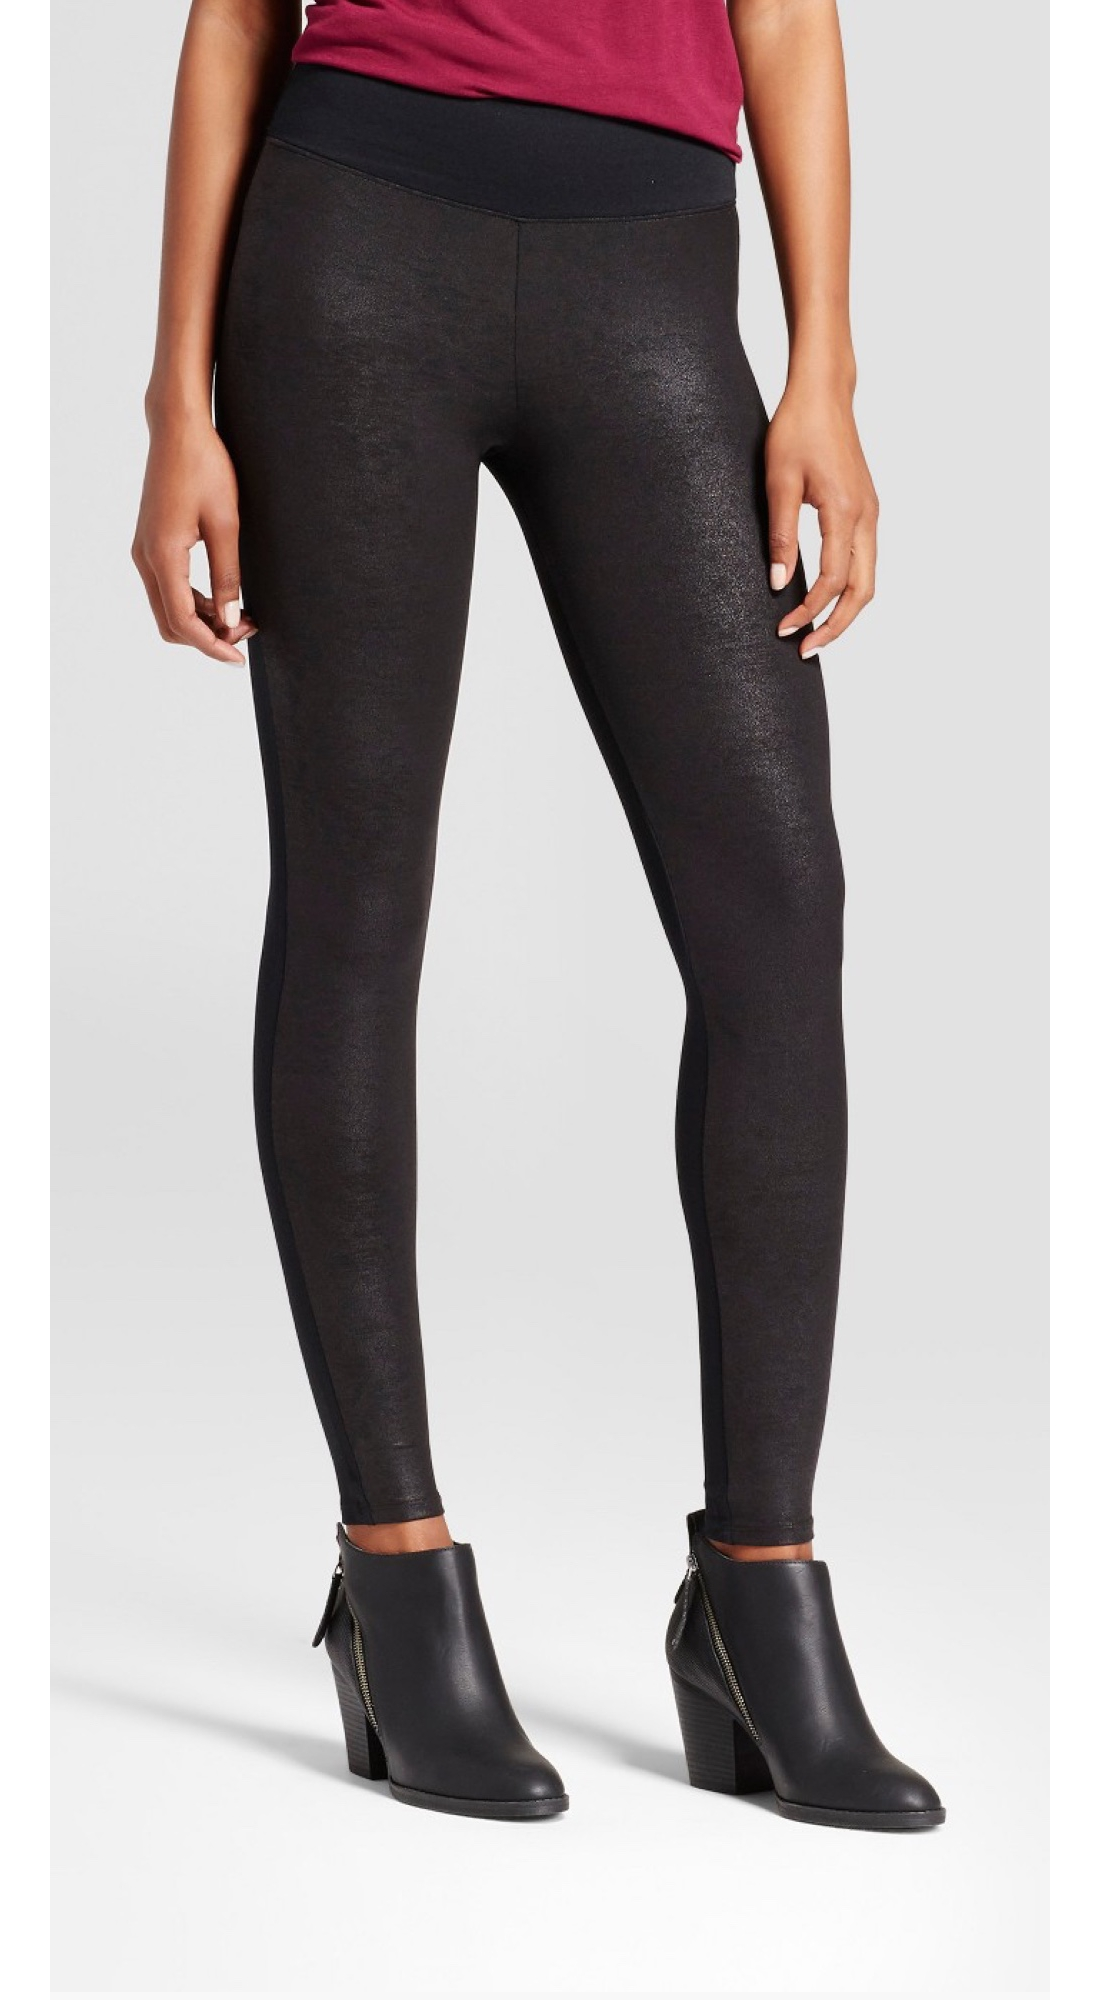 ASSETS® by Spanx® Women's Faux Leather Front Legging